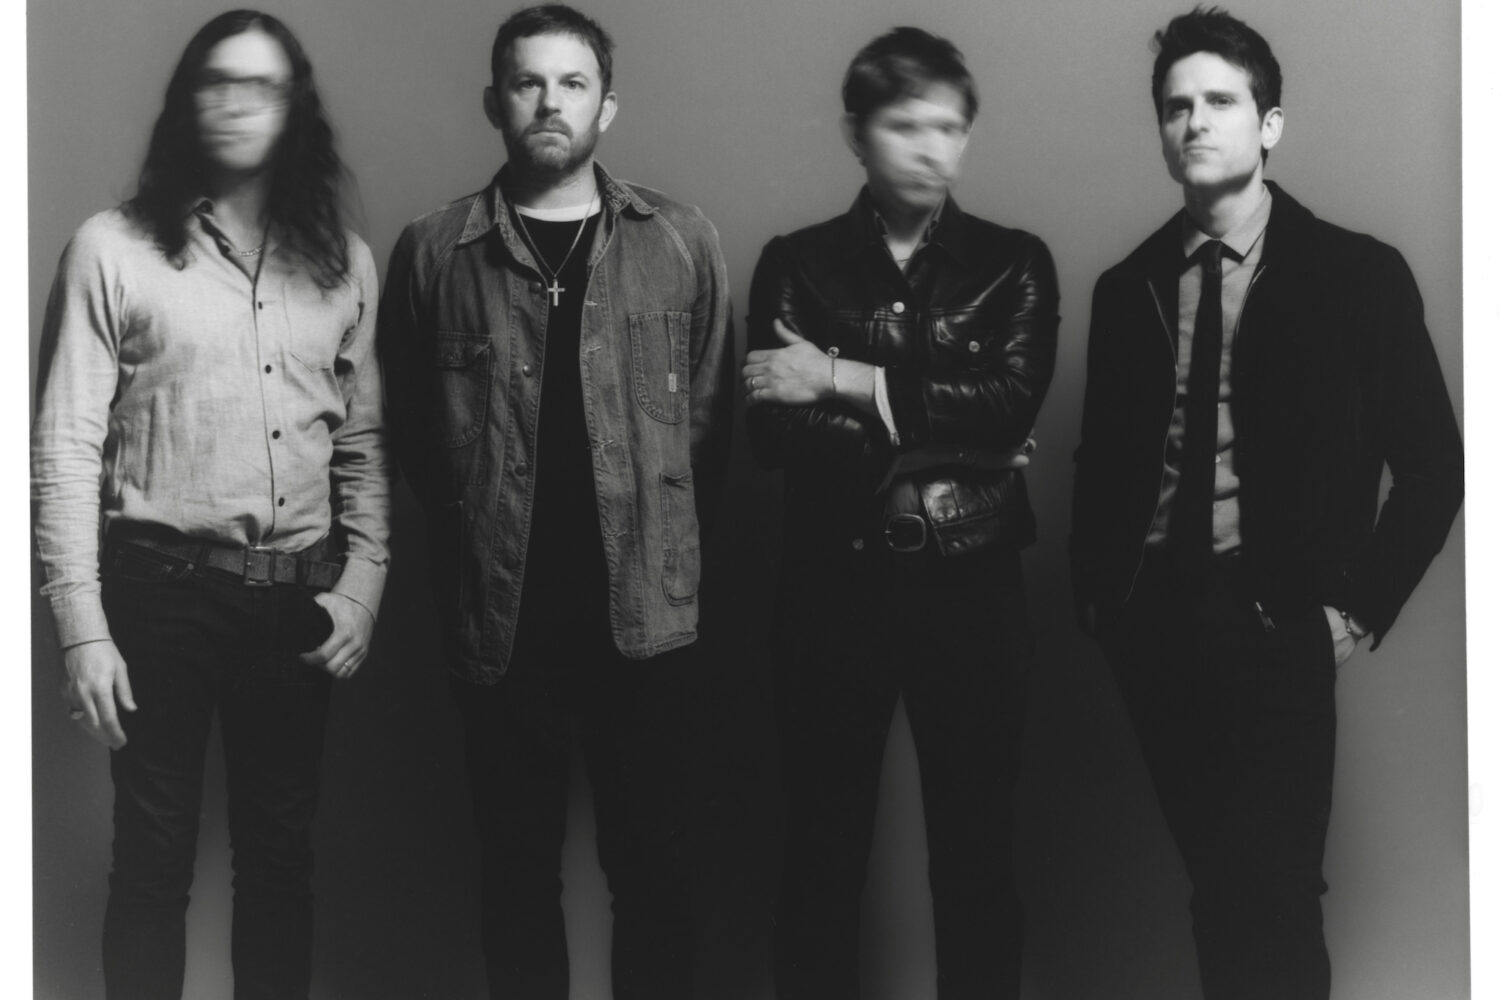 Kings Of Leon share new single 'Echoing'